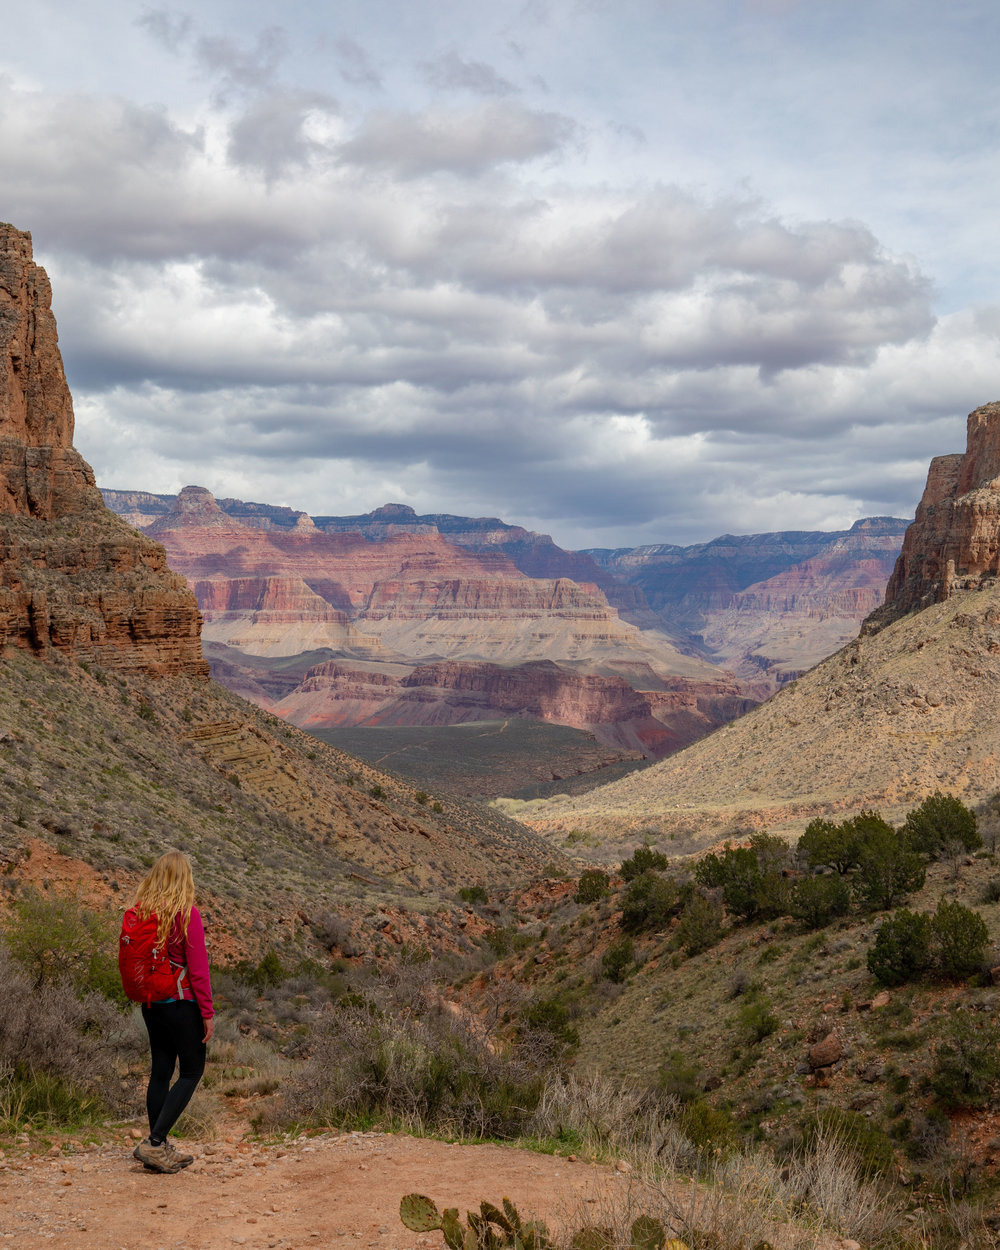 One of the views from the Bright Angel Trail